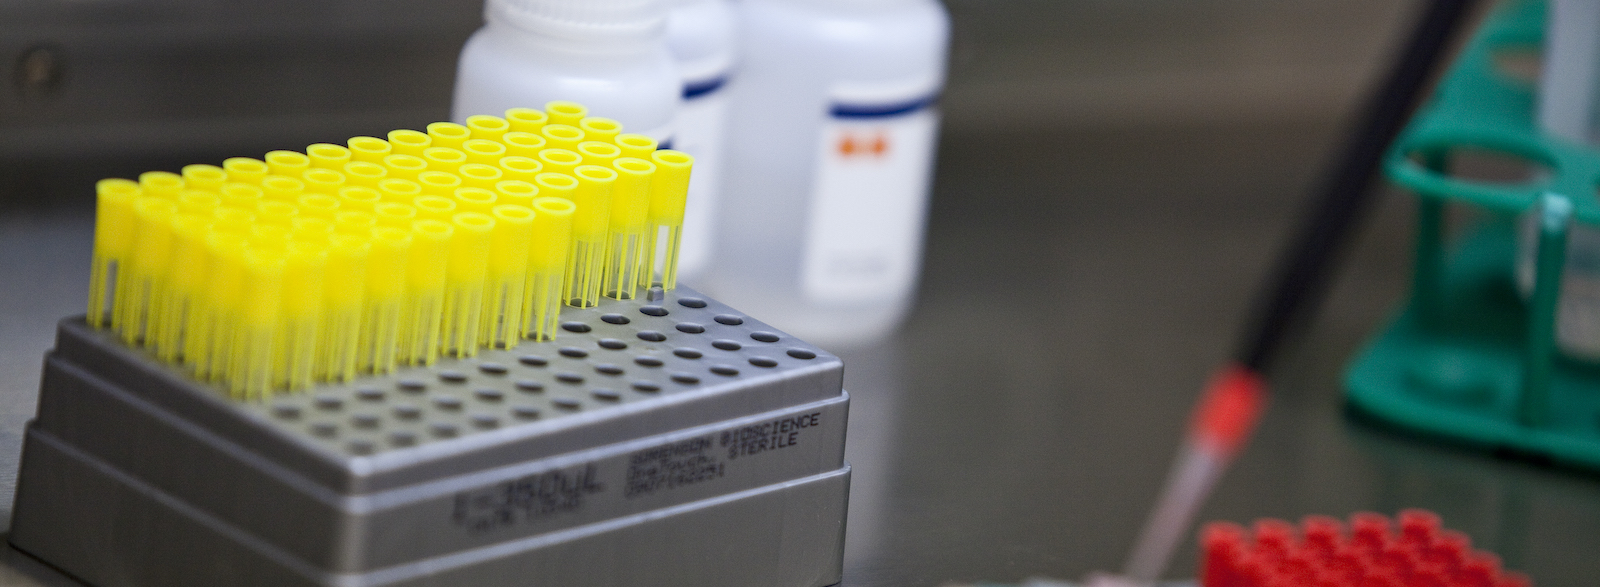 VelaLabs' analytical services portfolio for clinical studies